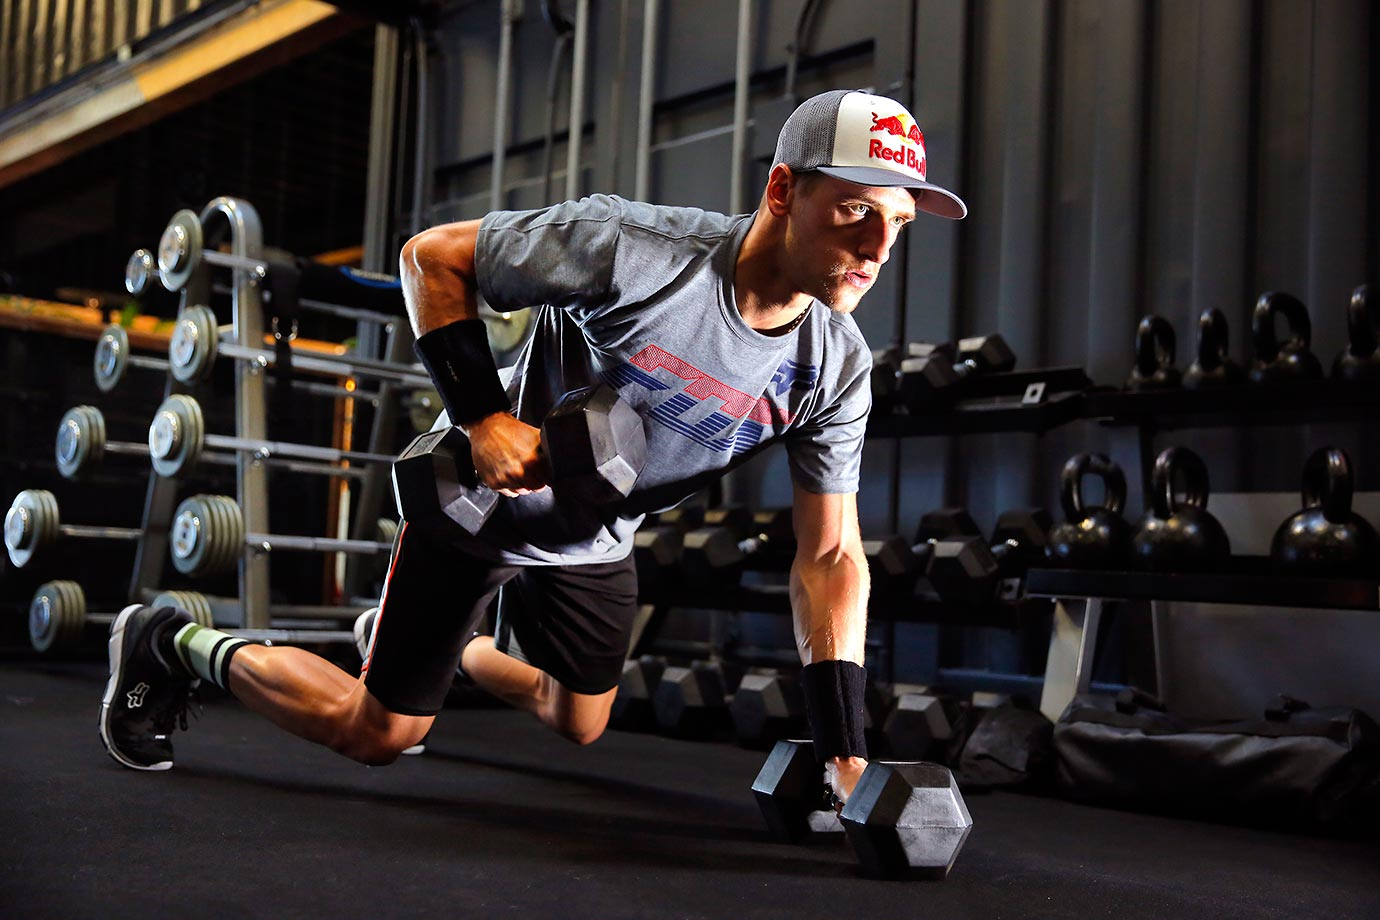 Ken Roczen utilizes a variety of exercises help keep his body in tune.